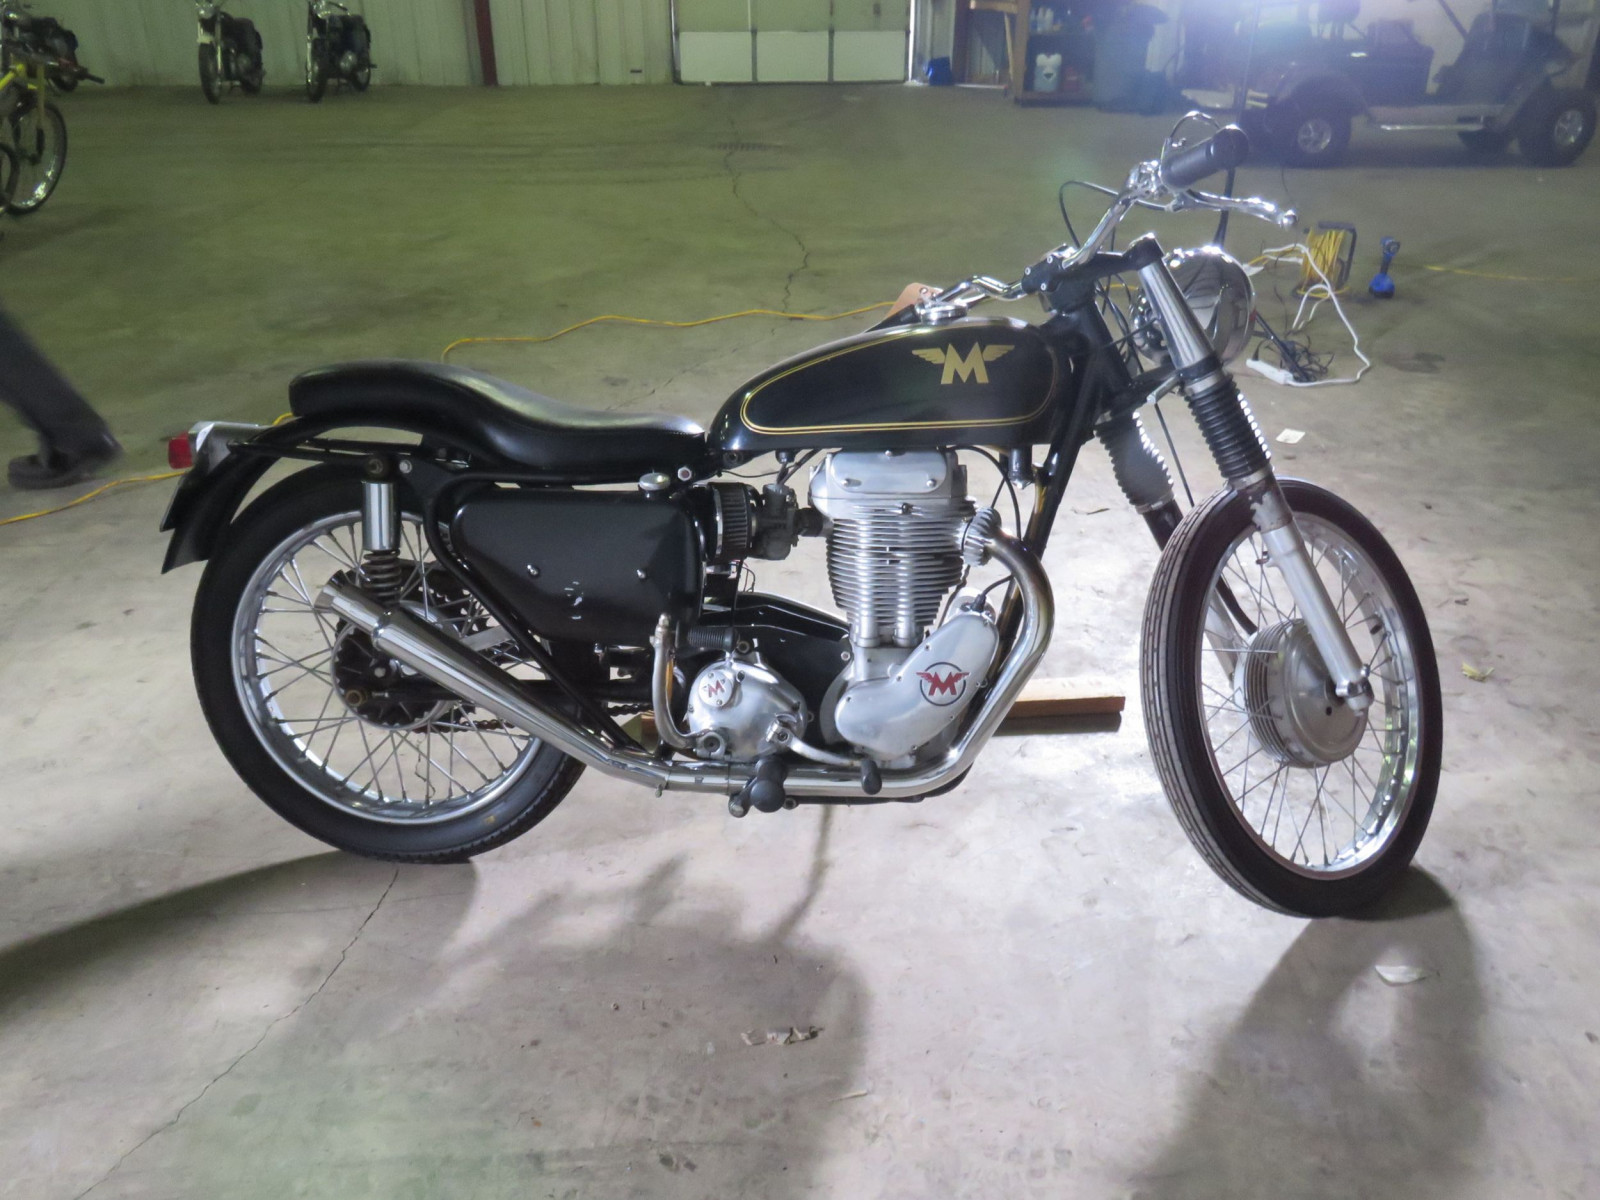 1956 Matchless G80 Motorcycle - Image 5